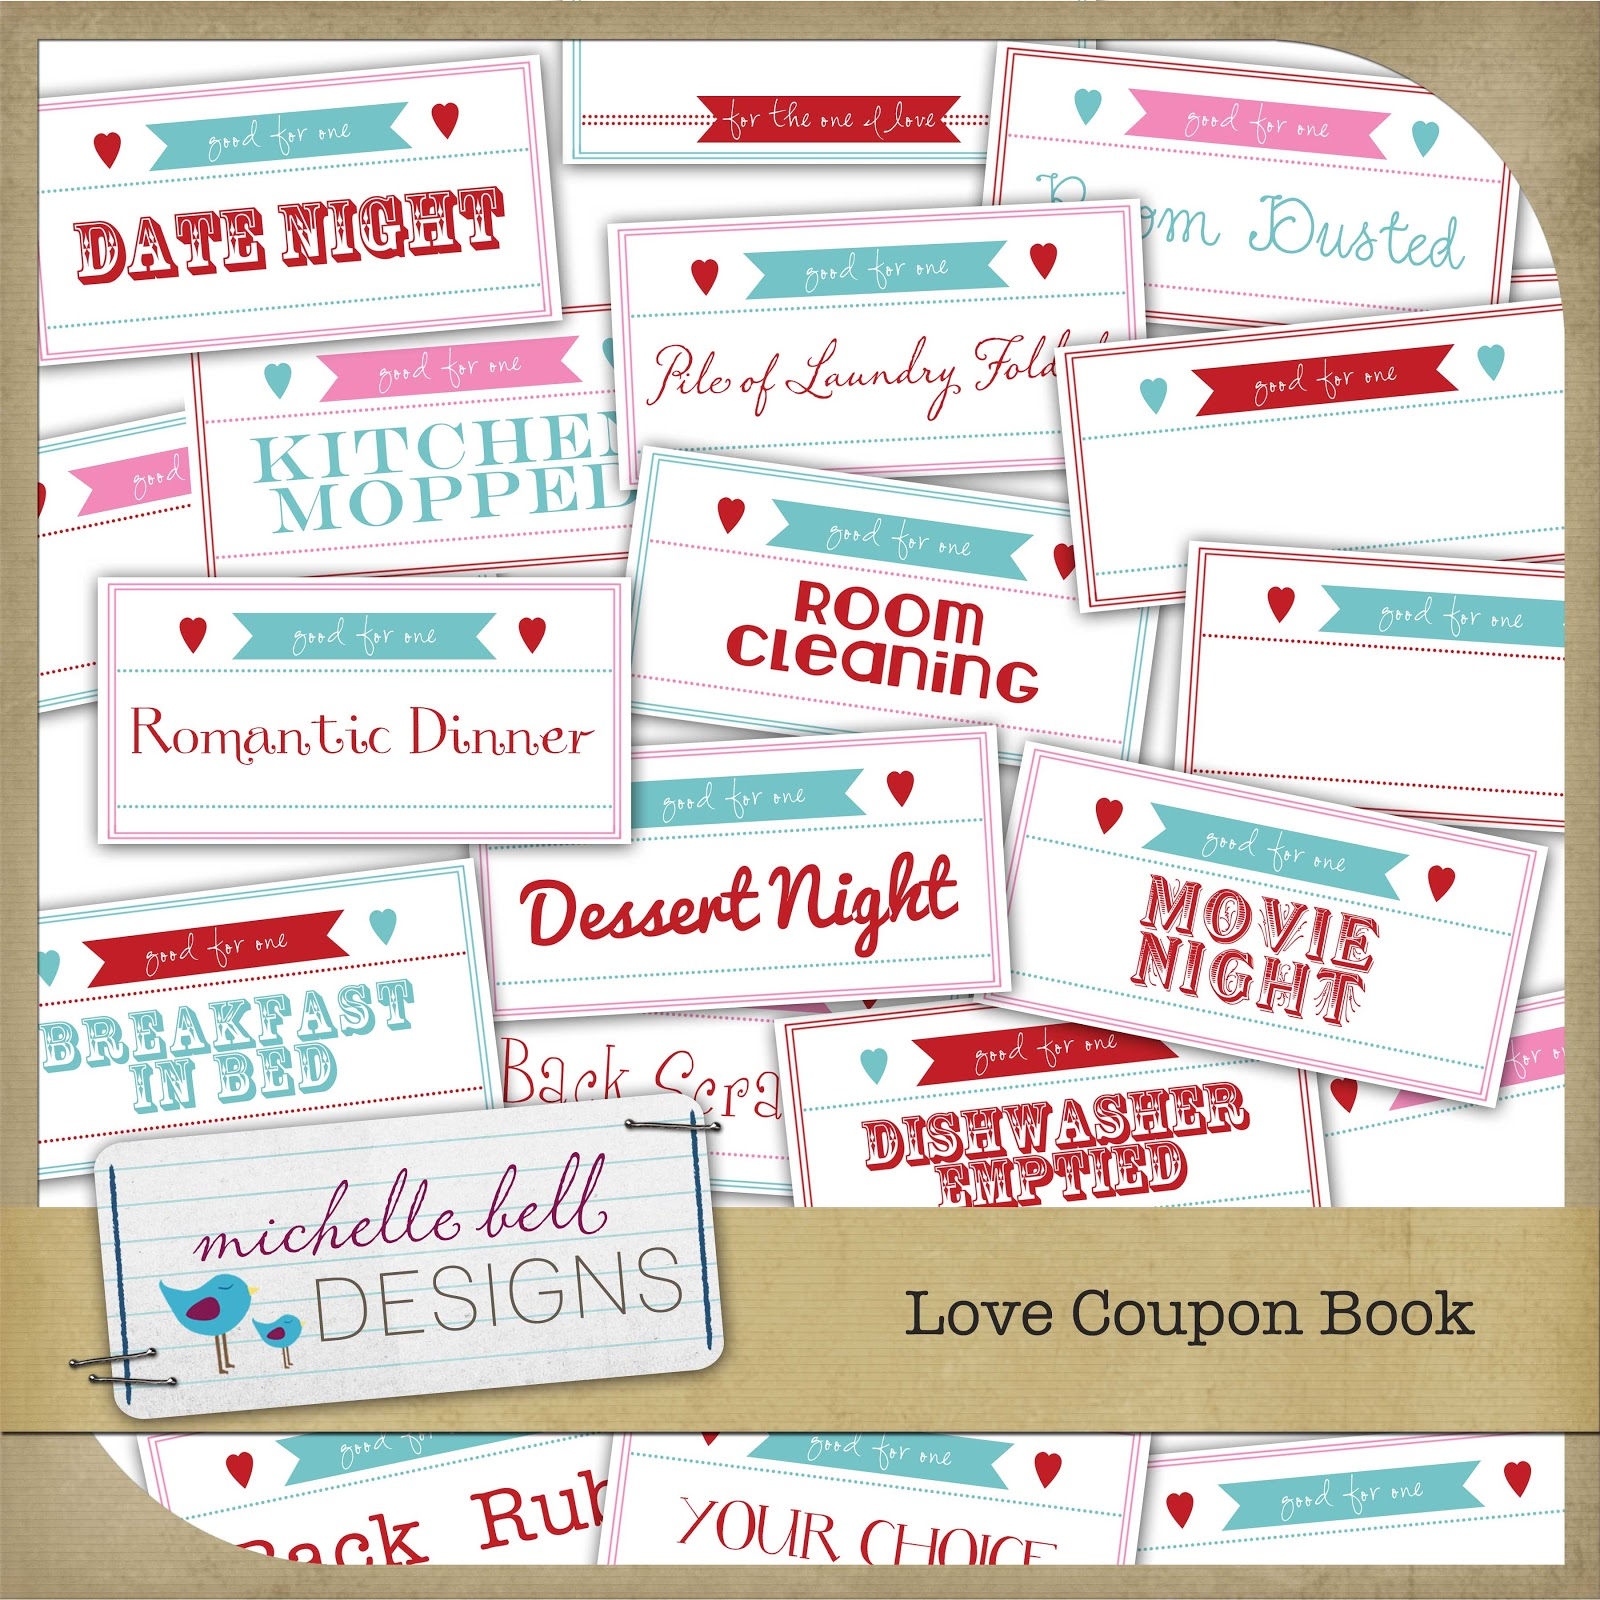 Discount coupon book